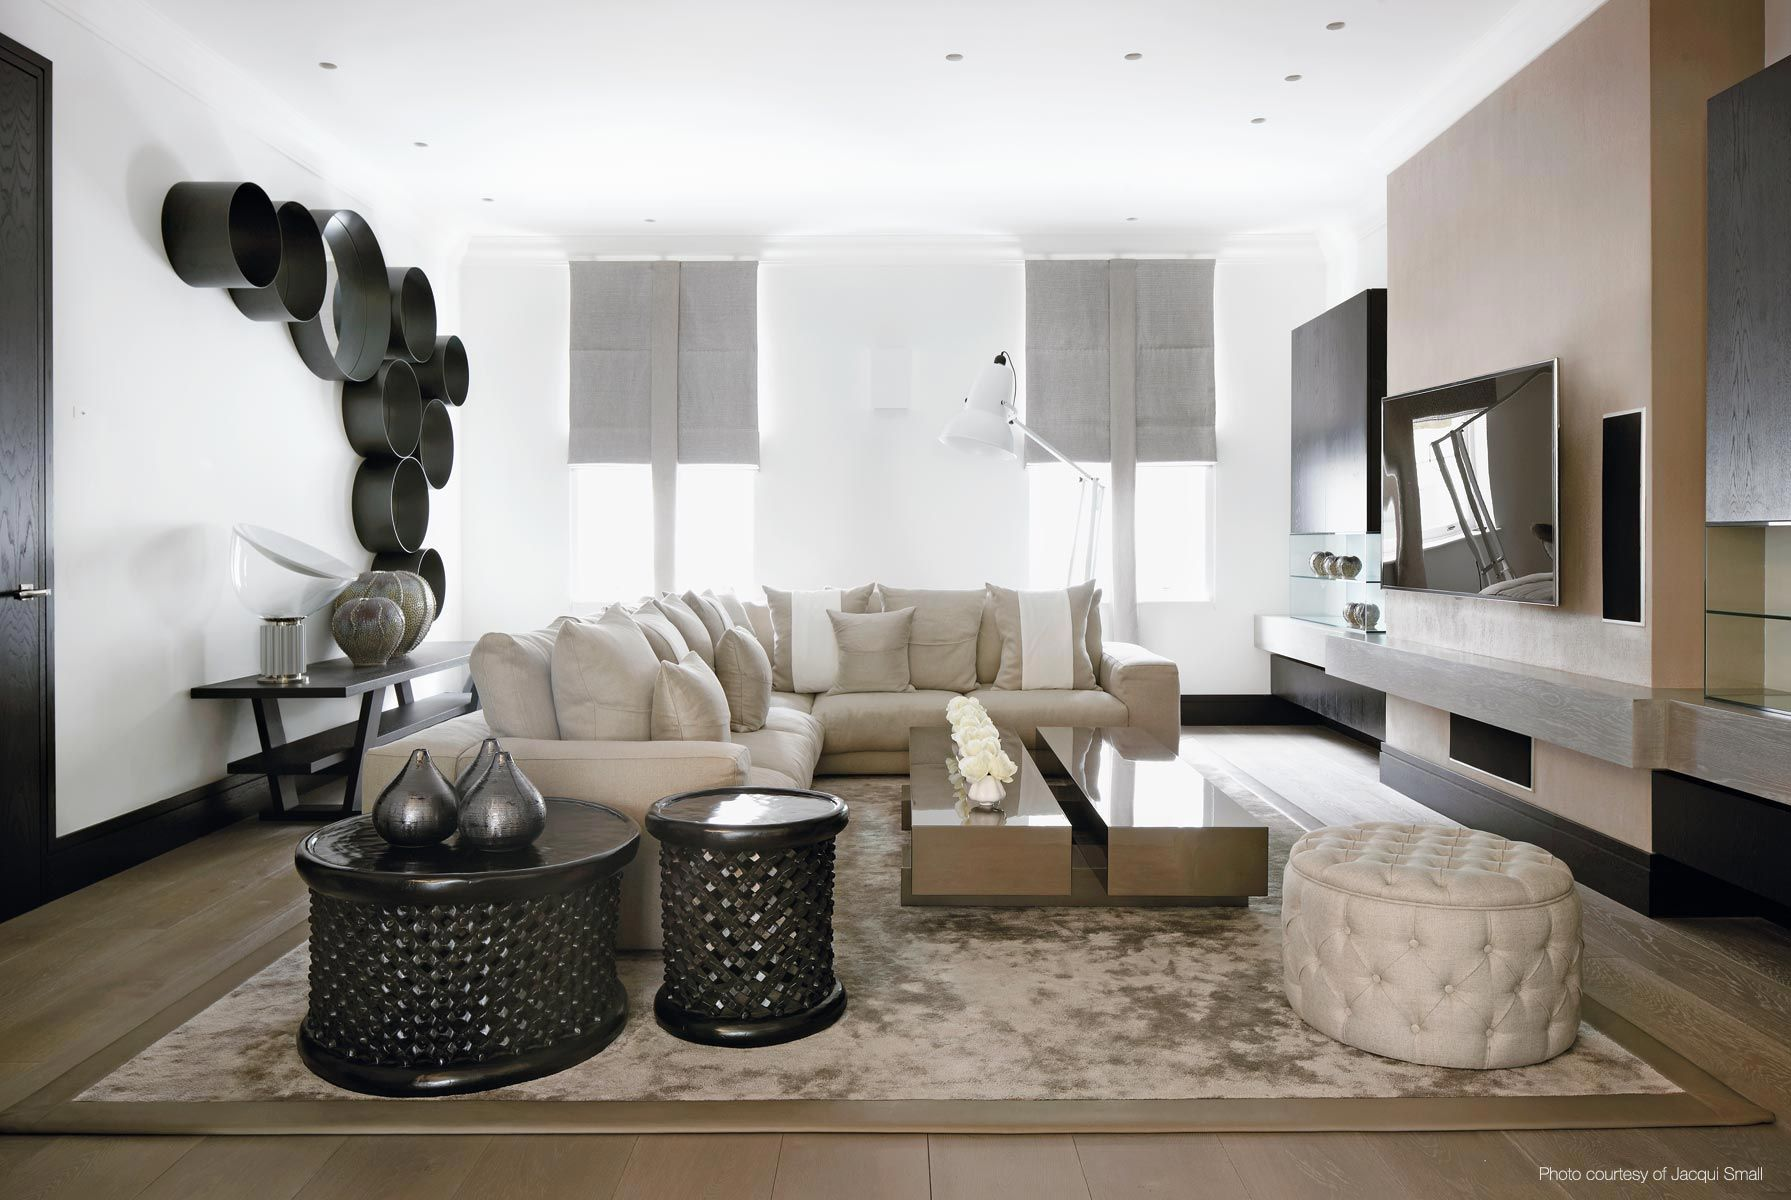 Living Room Design Contemporary Cool Kelly Hoppen Couturekellyhoppen Interior Designcontemporary Decorating Inspiration